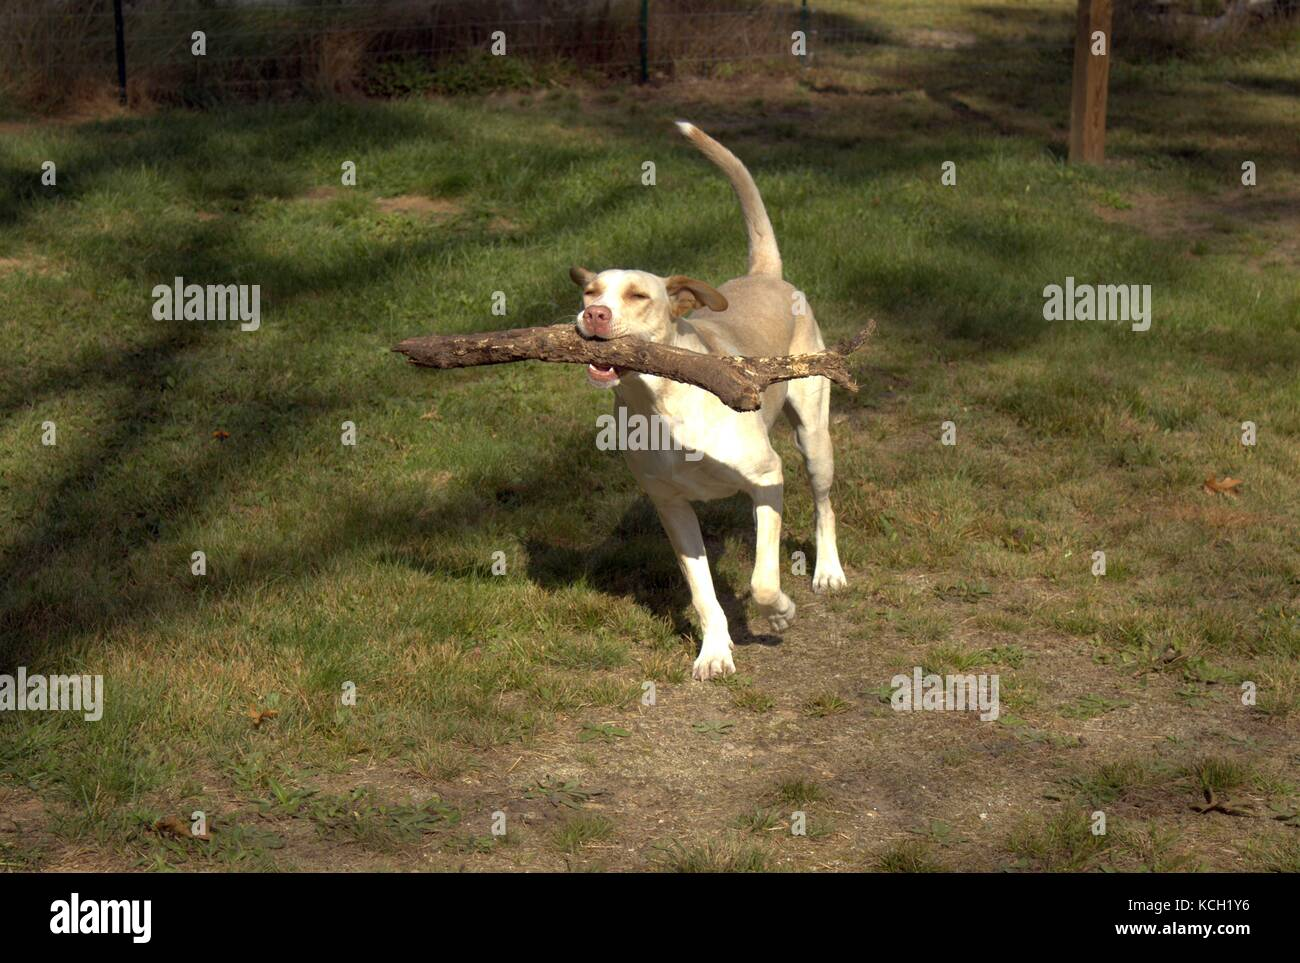 Young Dog Running With A Tree Limb In His Mouth - Stock Image